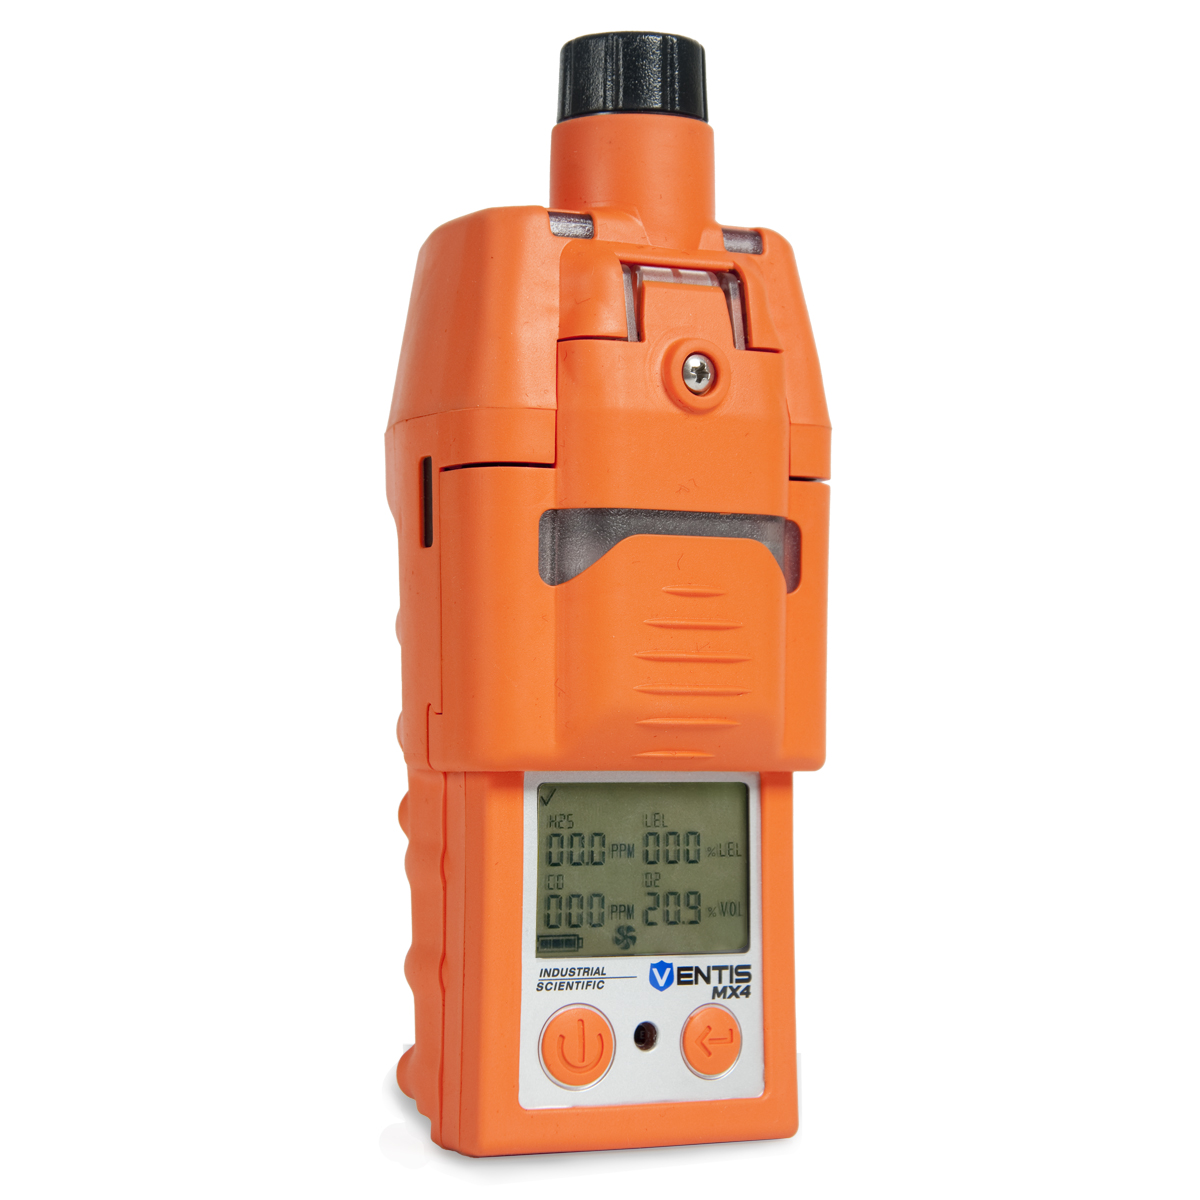 4 Gas Meter : National safety supply ventis mx multi gas monitor